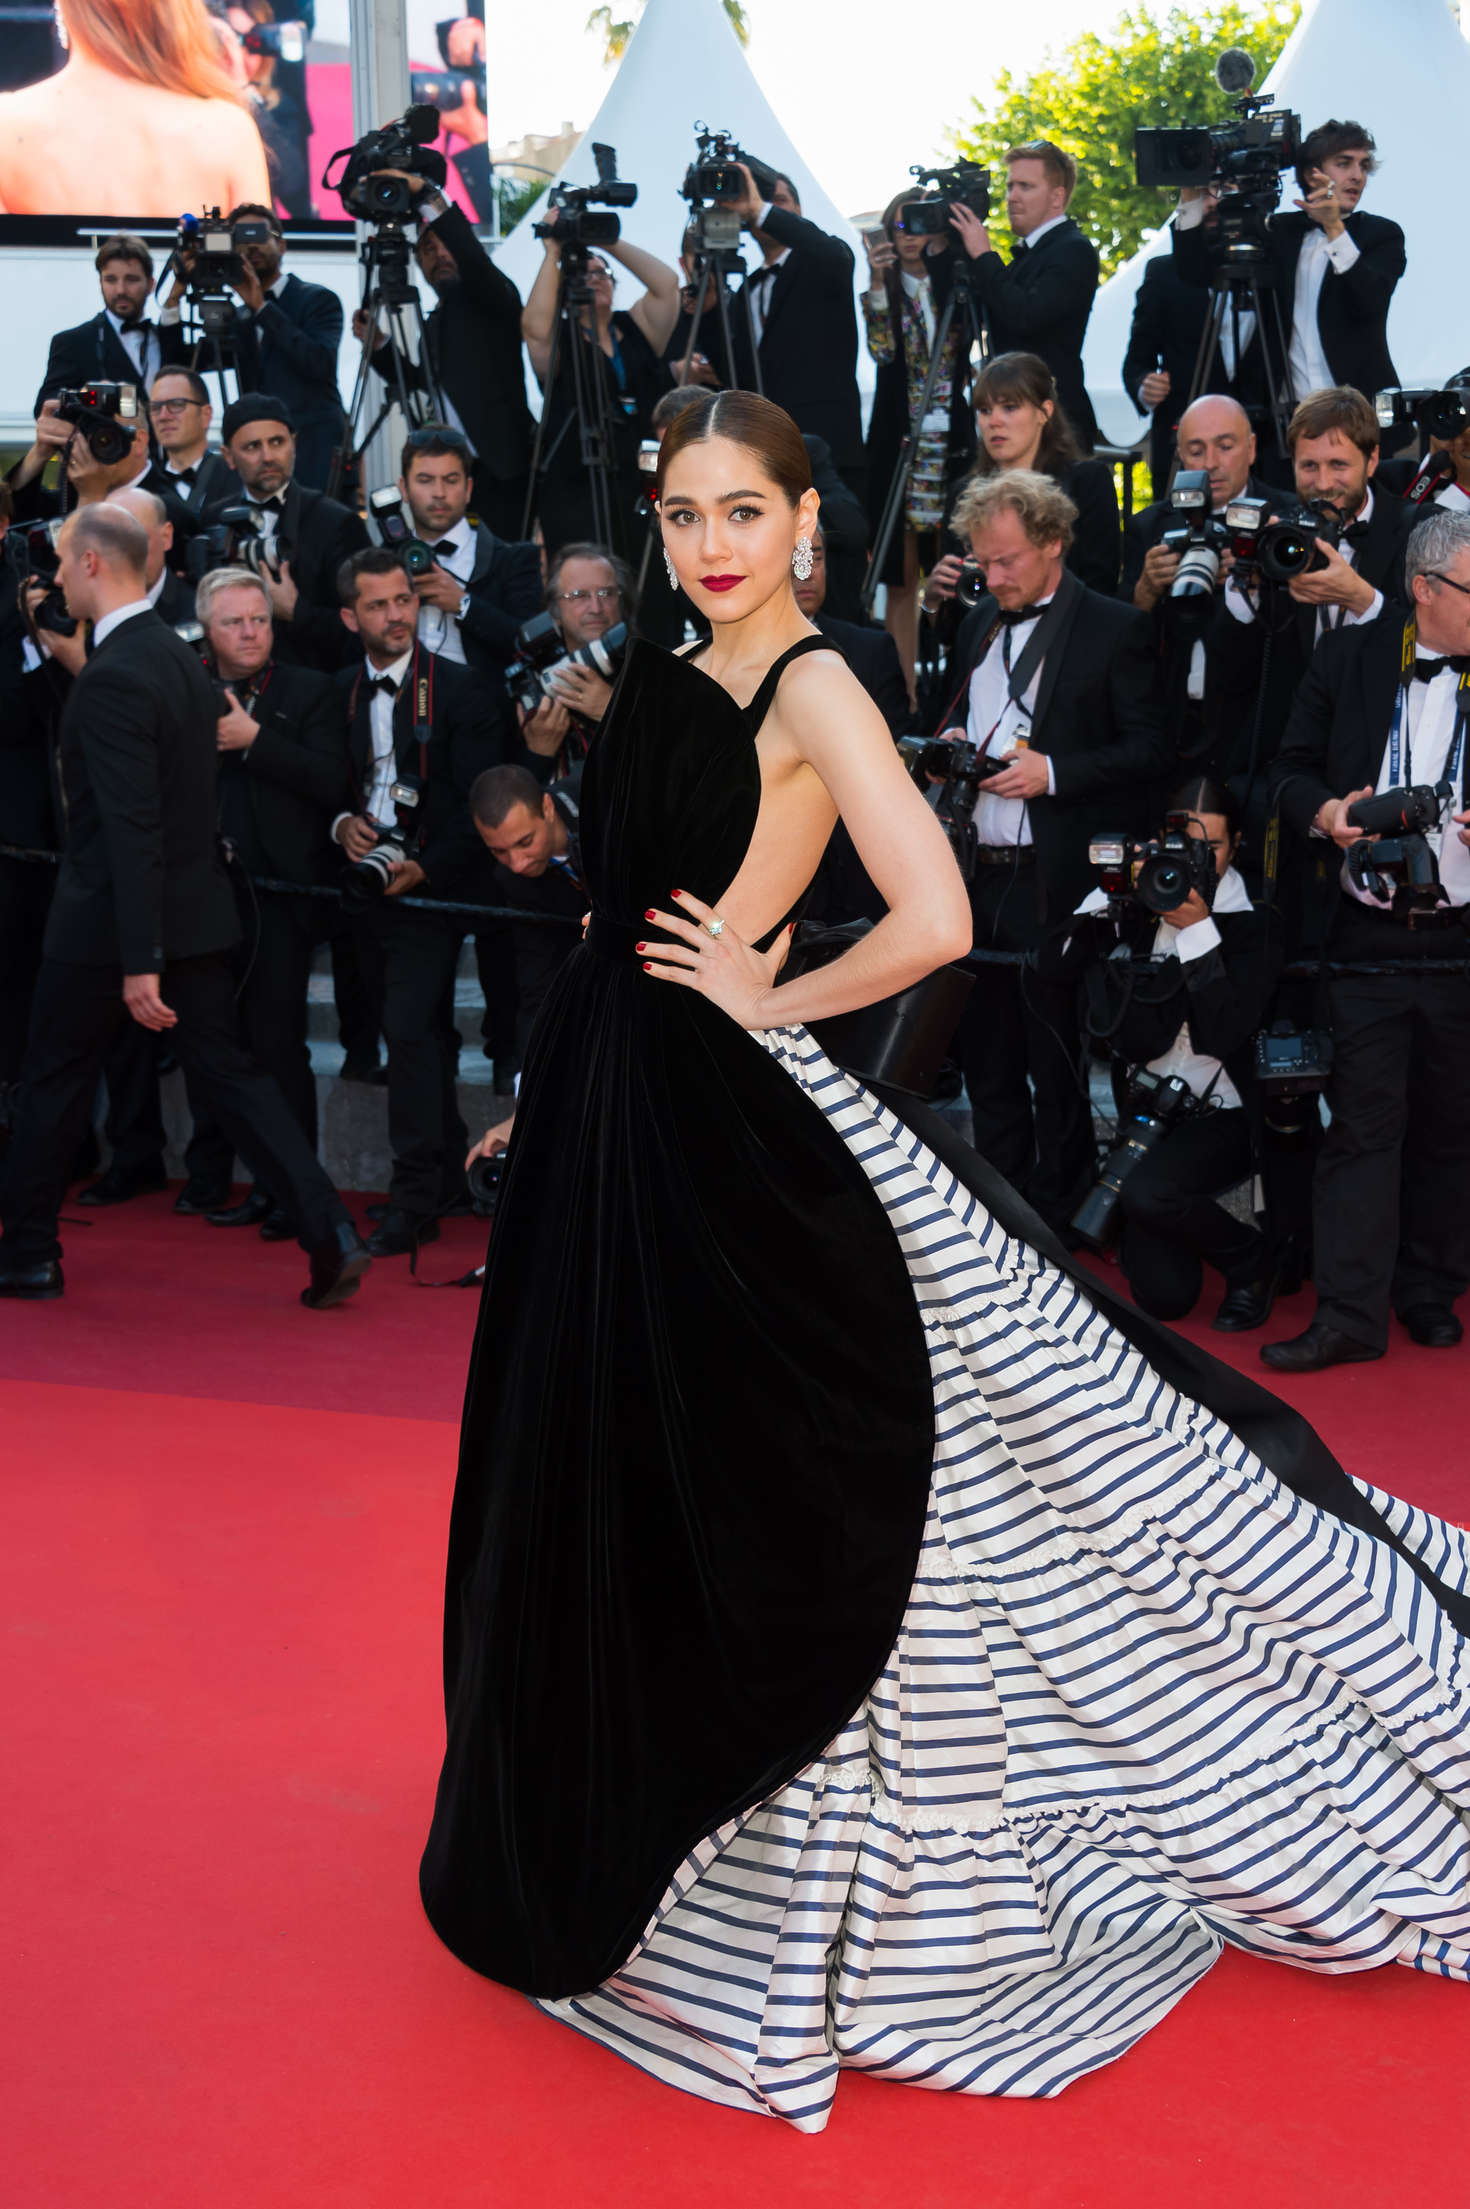 Araya A. Hargate - 'From the Land of the Moon' Premiere at 2016 Cannes Film Festival